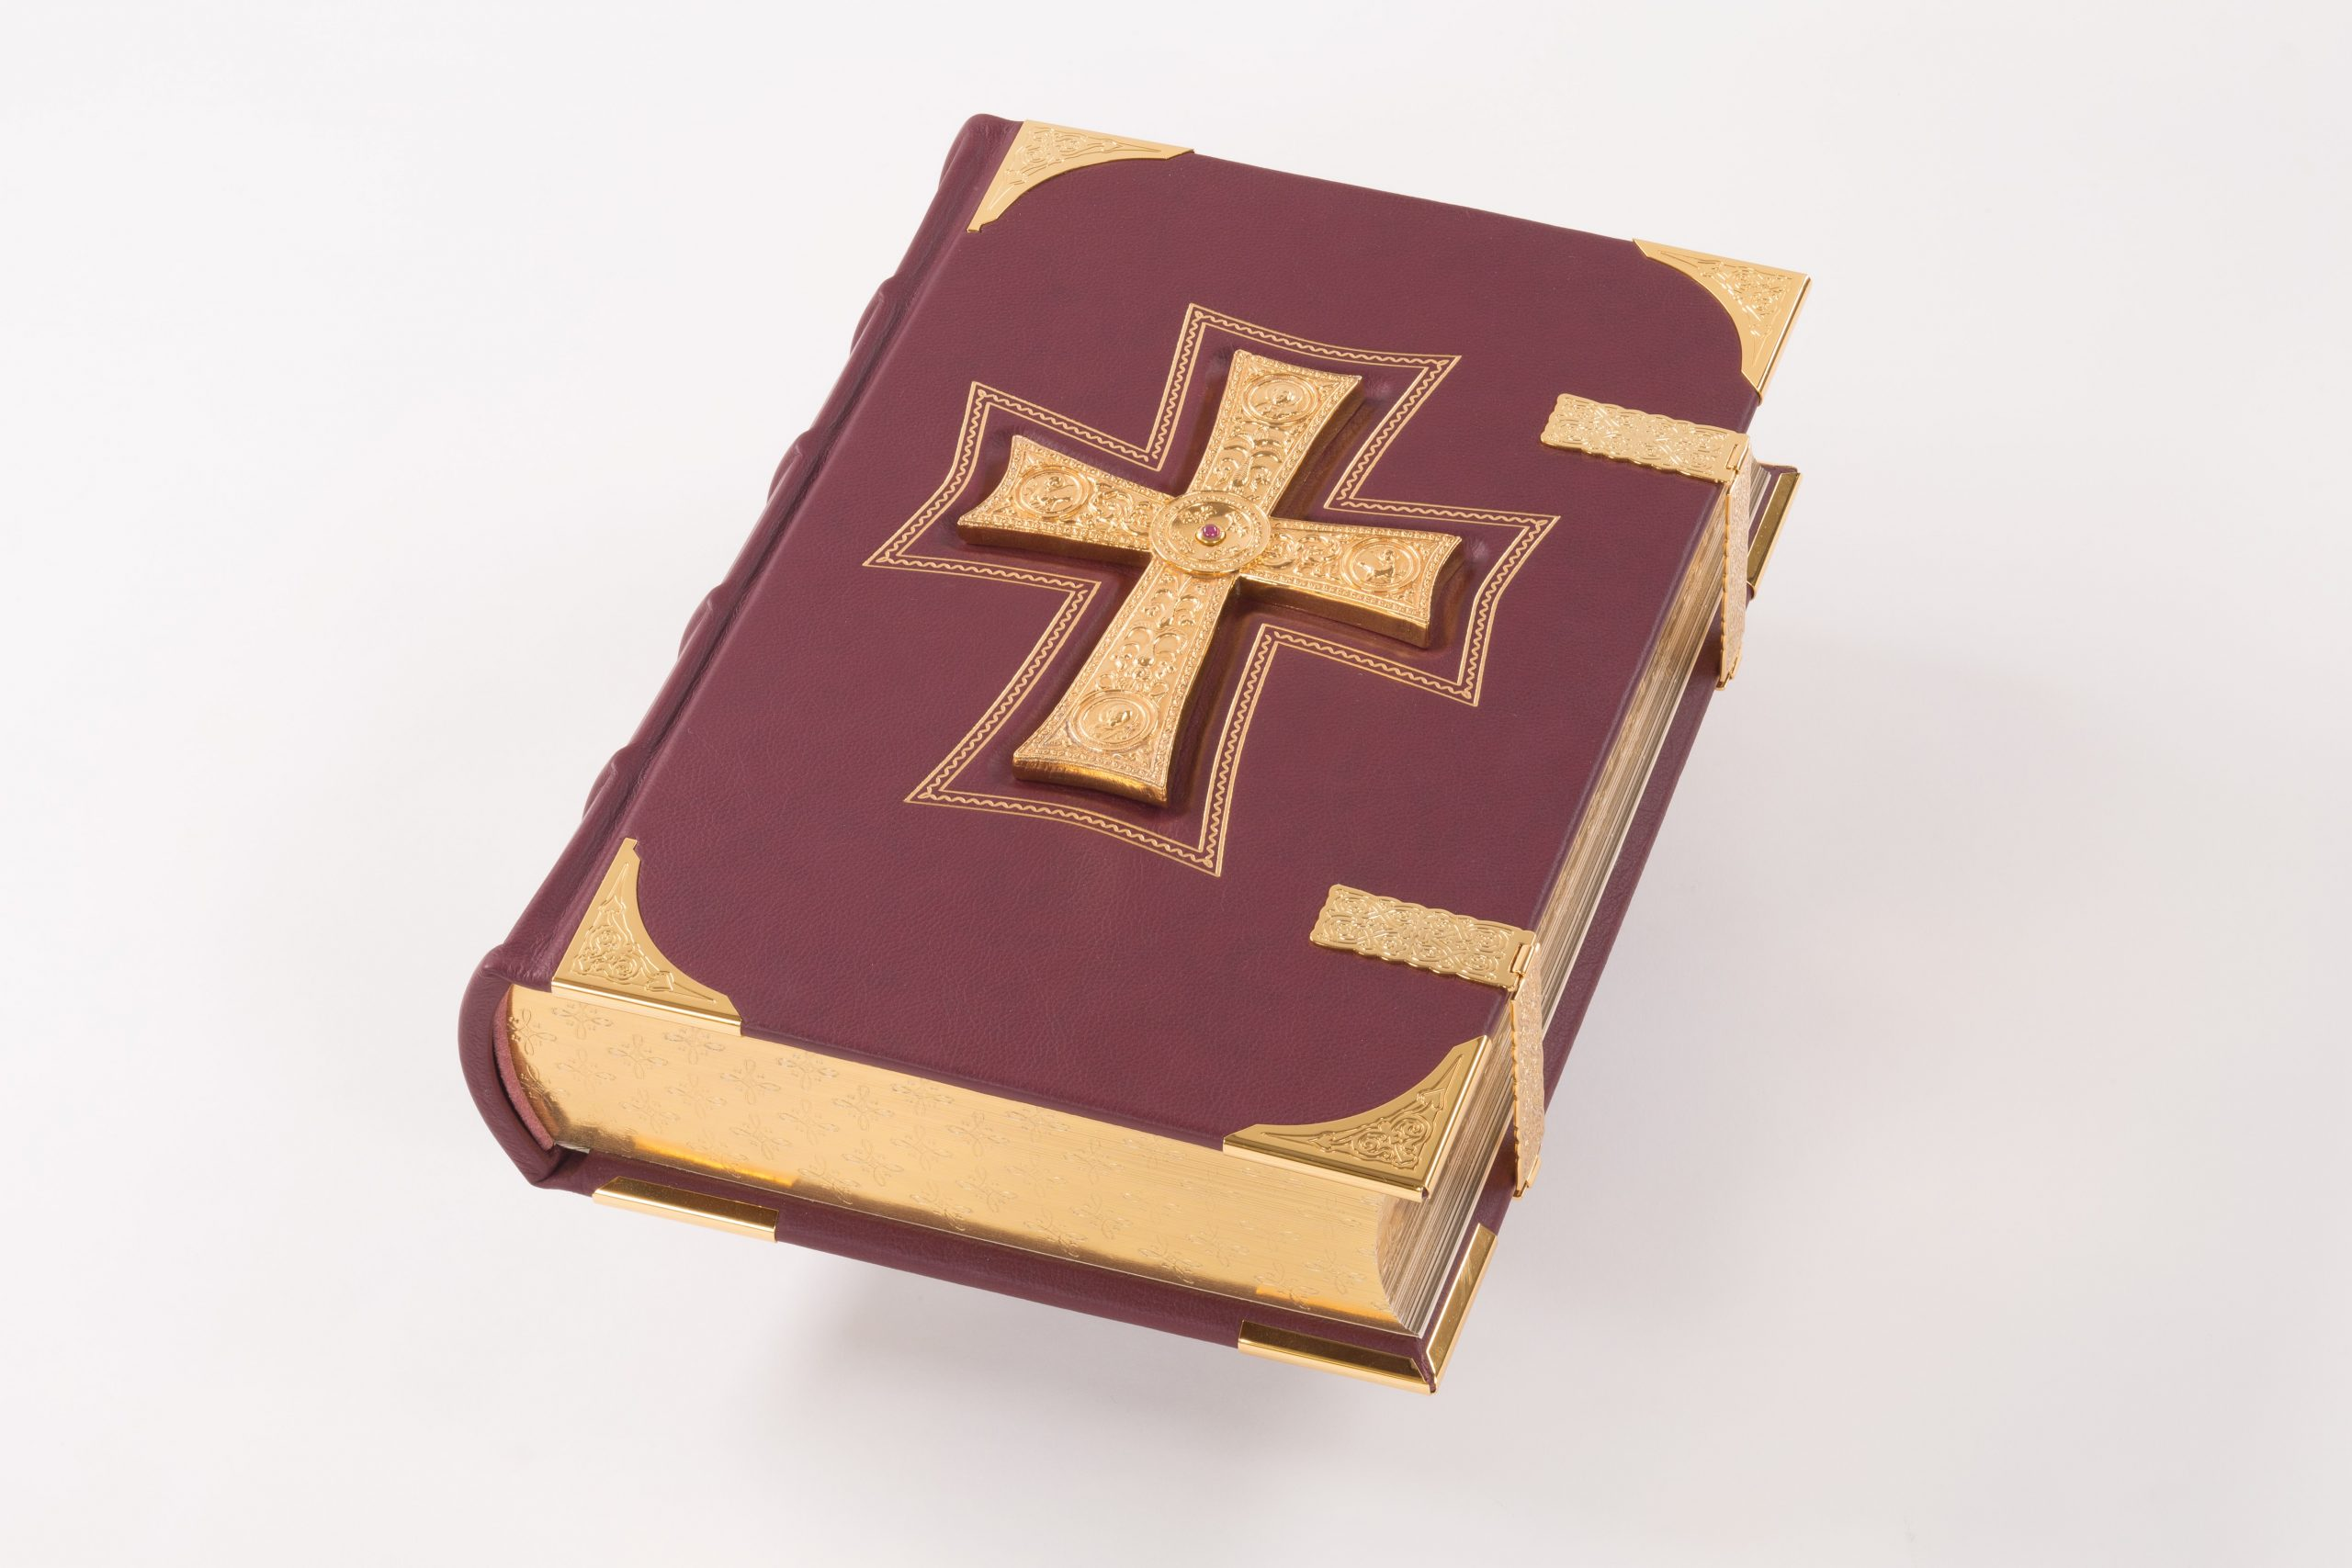 Bilderbibel, picutre bible, illustrated bible, Bibel der Barmherzigkeit, Bible of Mercy, Luxusbindung, luxury binding, golden bible, Goldbibel, golden cross, Goldkreuz